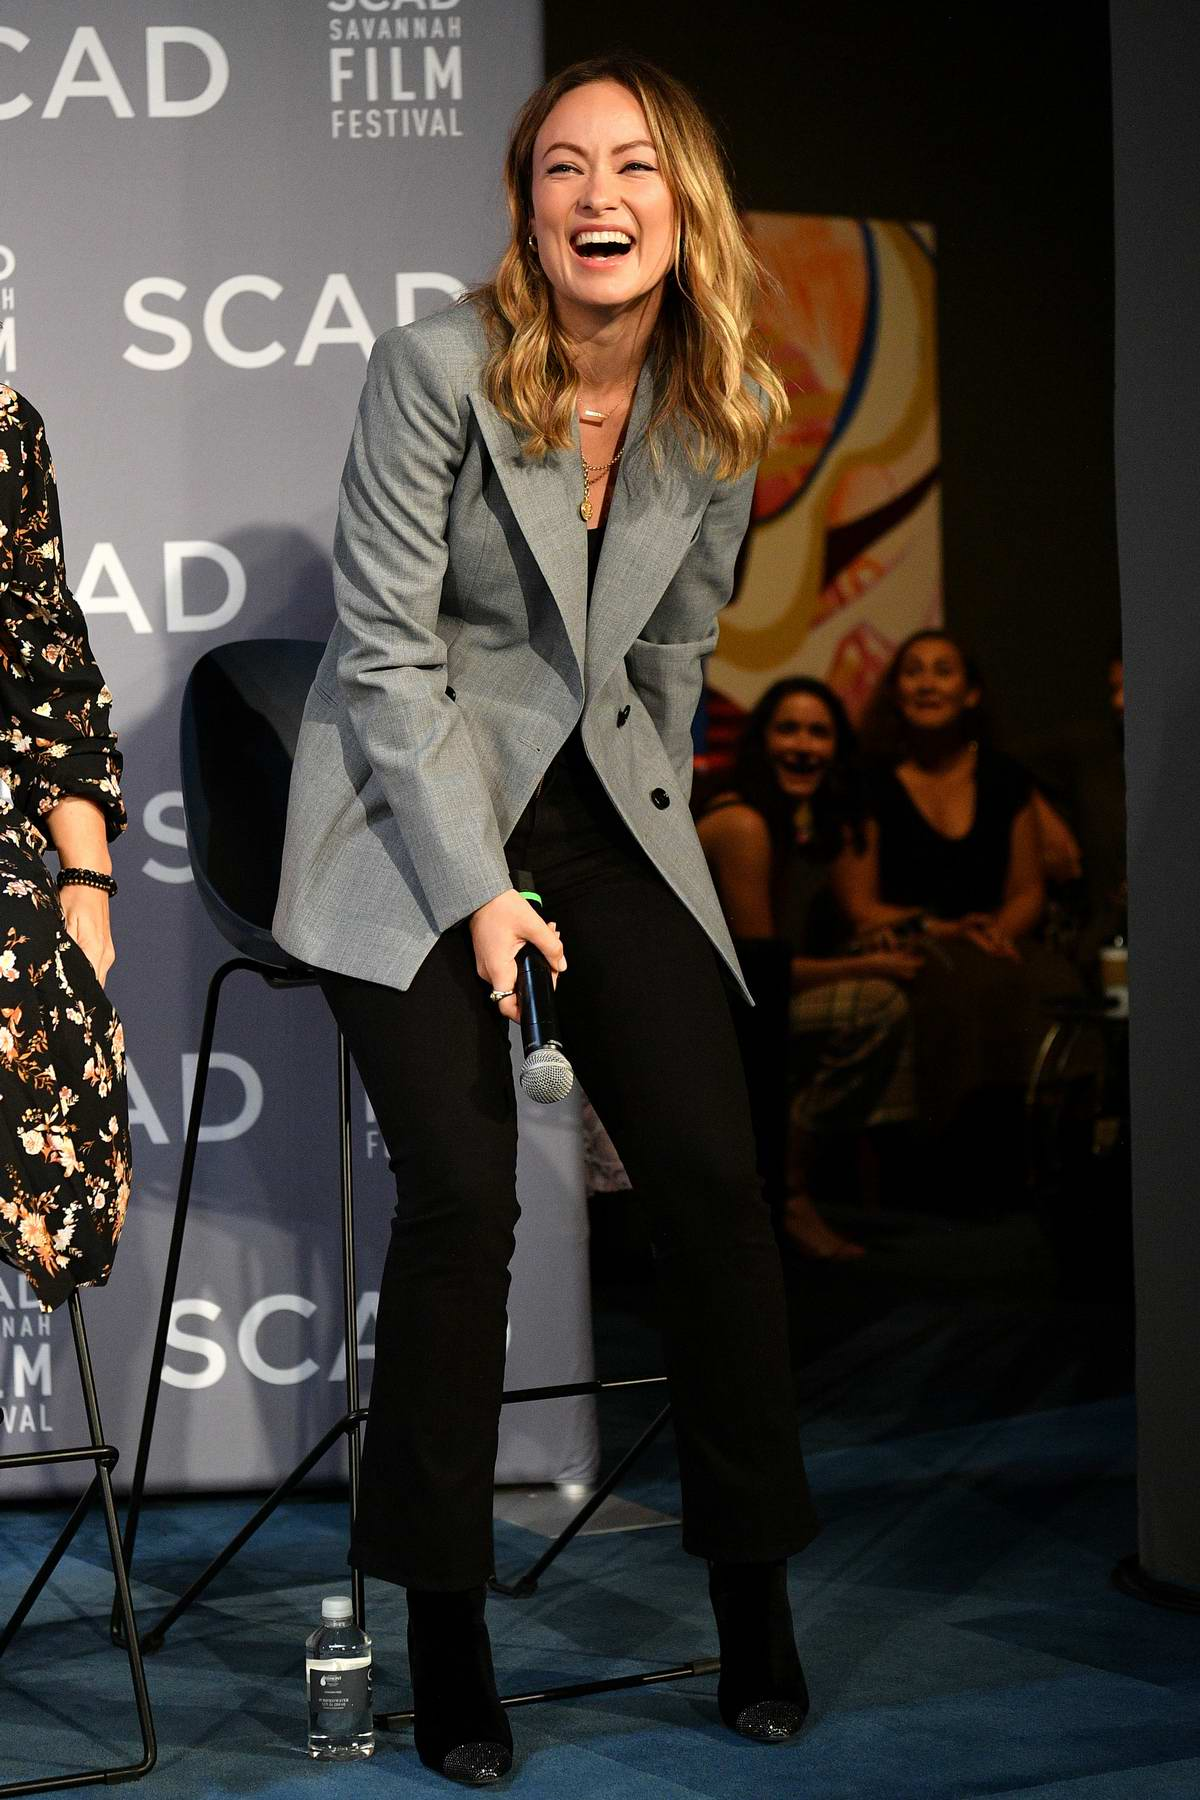 Olivia Wilde attends the Wonder Women: Directors panel at the 22nd SCAD Savannah Film Festival in Savannah, Georgia